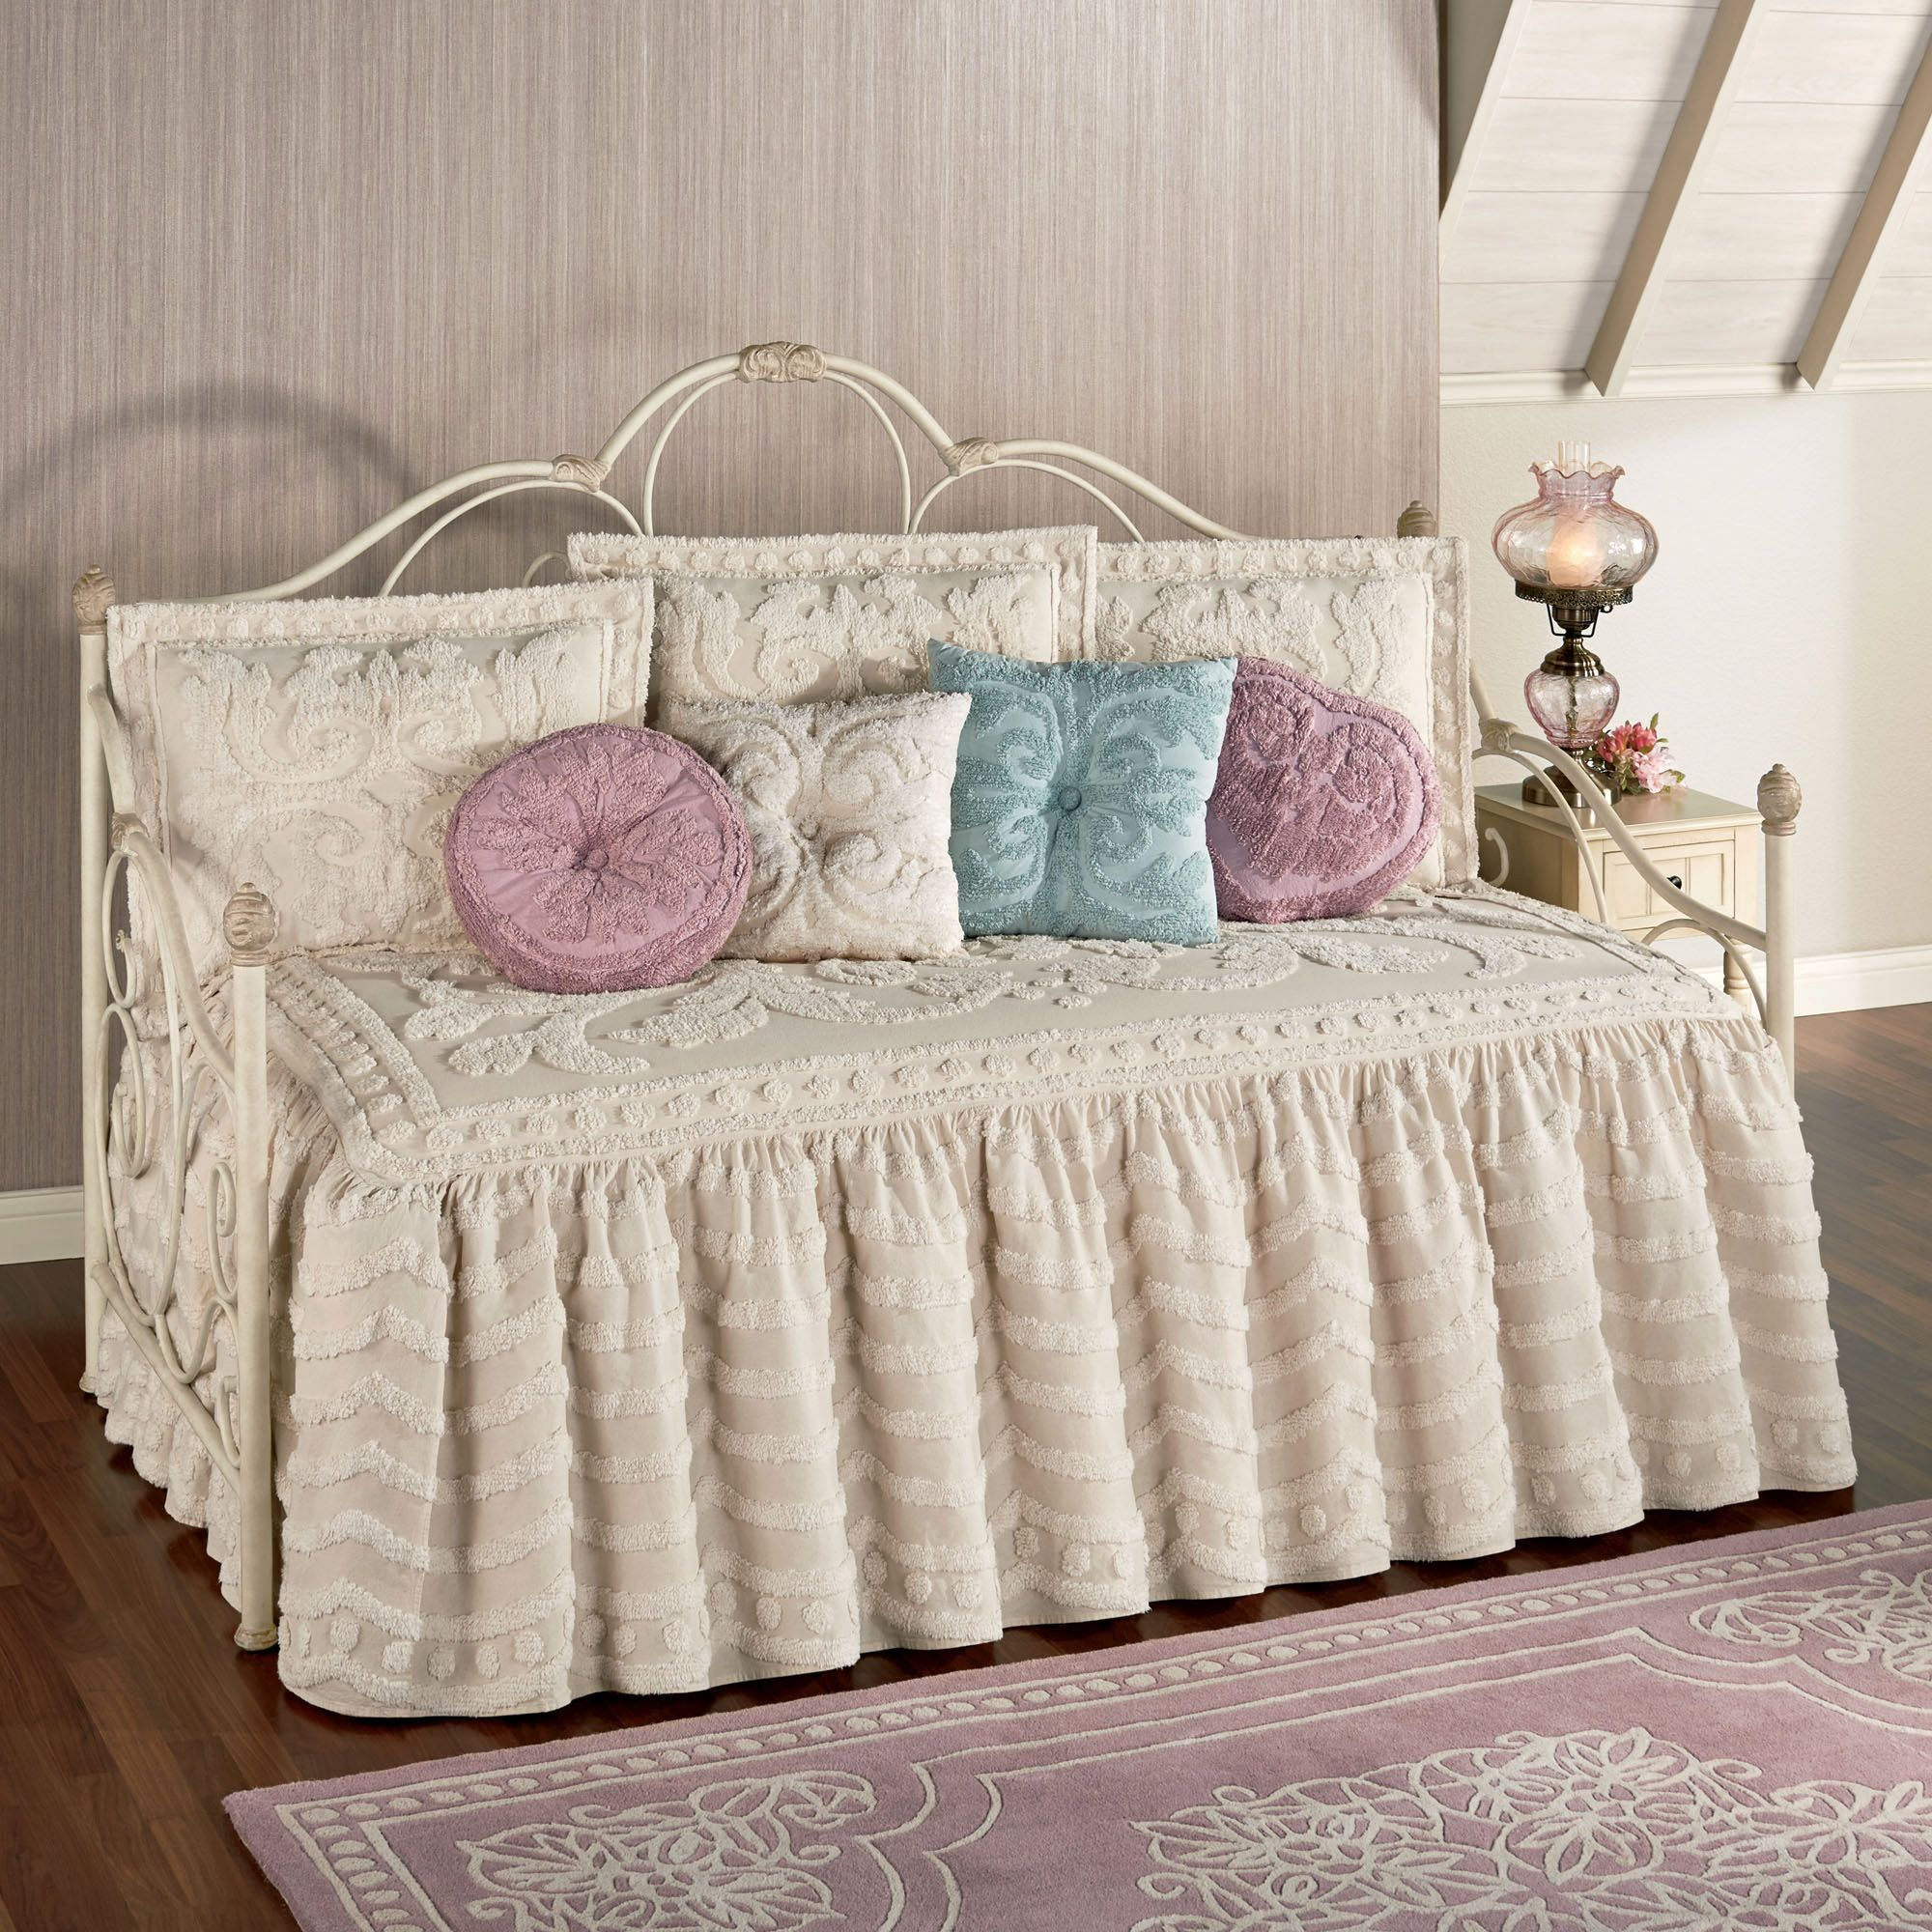 Intrigue Chenille Ruffled Flounce Daybed Bedding Set in